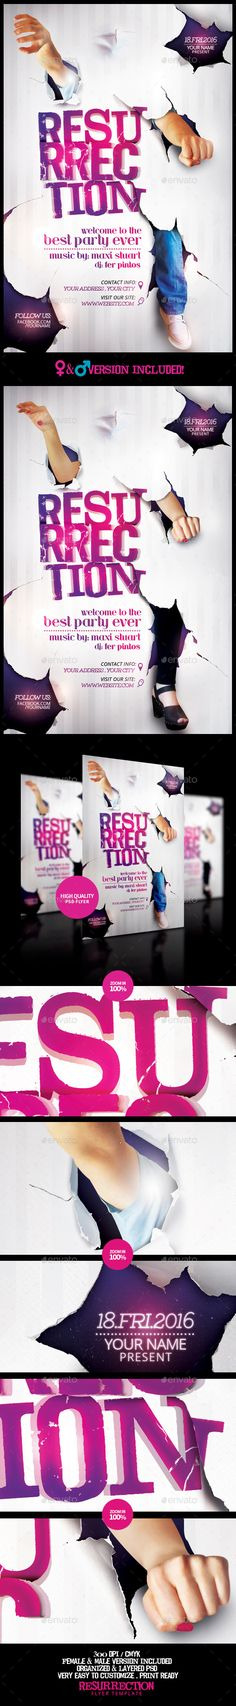 Resurrection Flyer Template /6. ***This flyer is perfect for the promotion of Events, Club Parties, Concerts, Musicals, Shows, Festivals, Theaters, Promotions or Whatever You Want! ***.